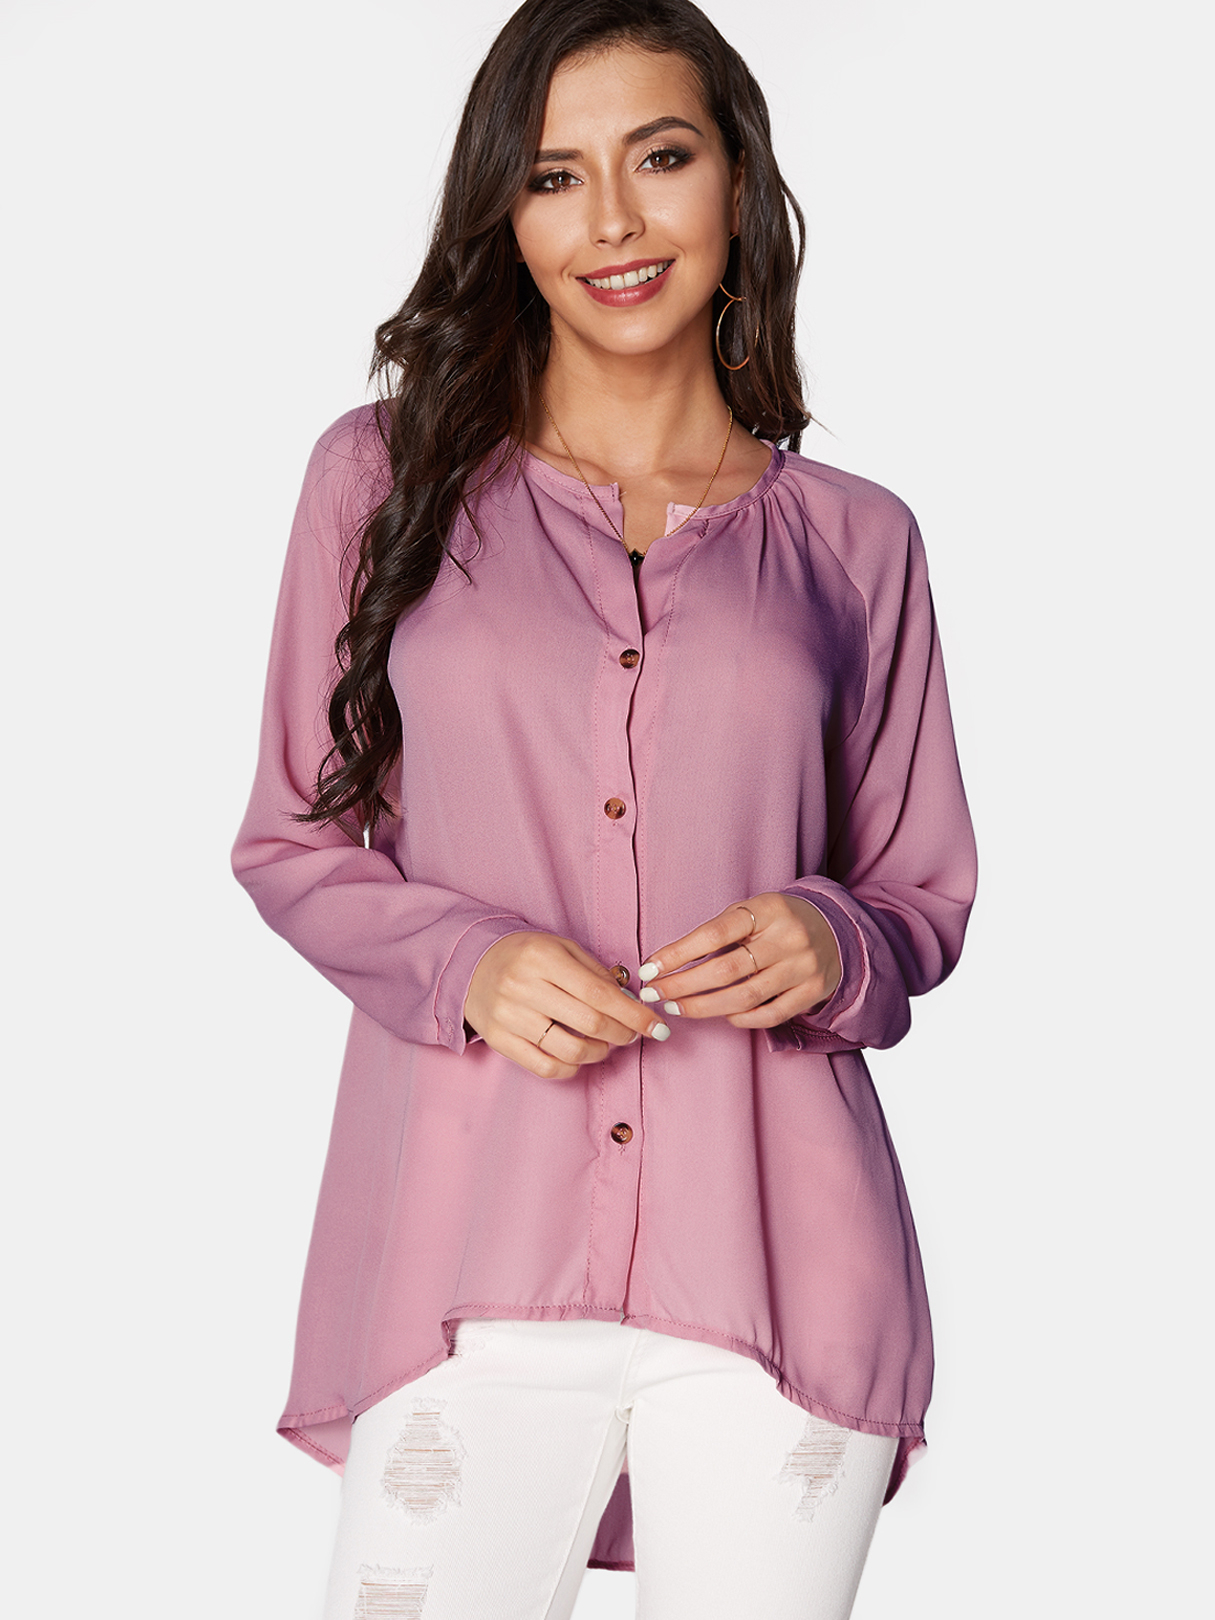 Pink Cozy V-neck Long Sleeves Button-down Chiffon Blouse купить недорого в Москве